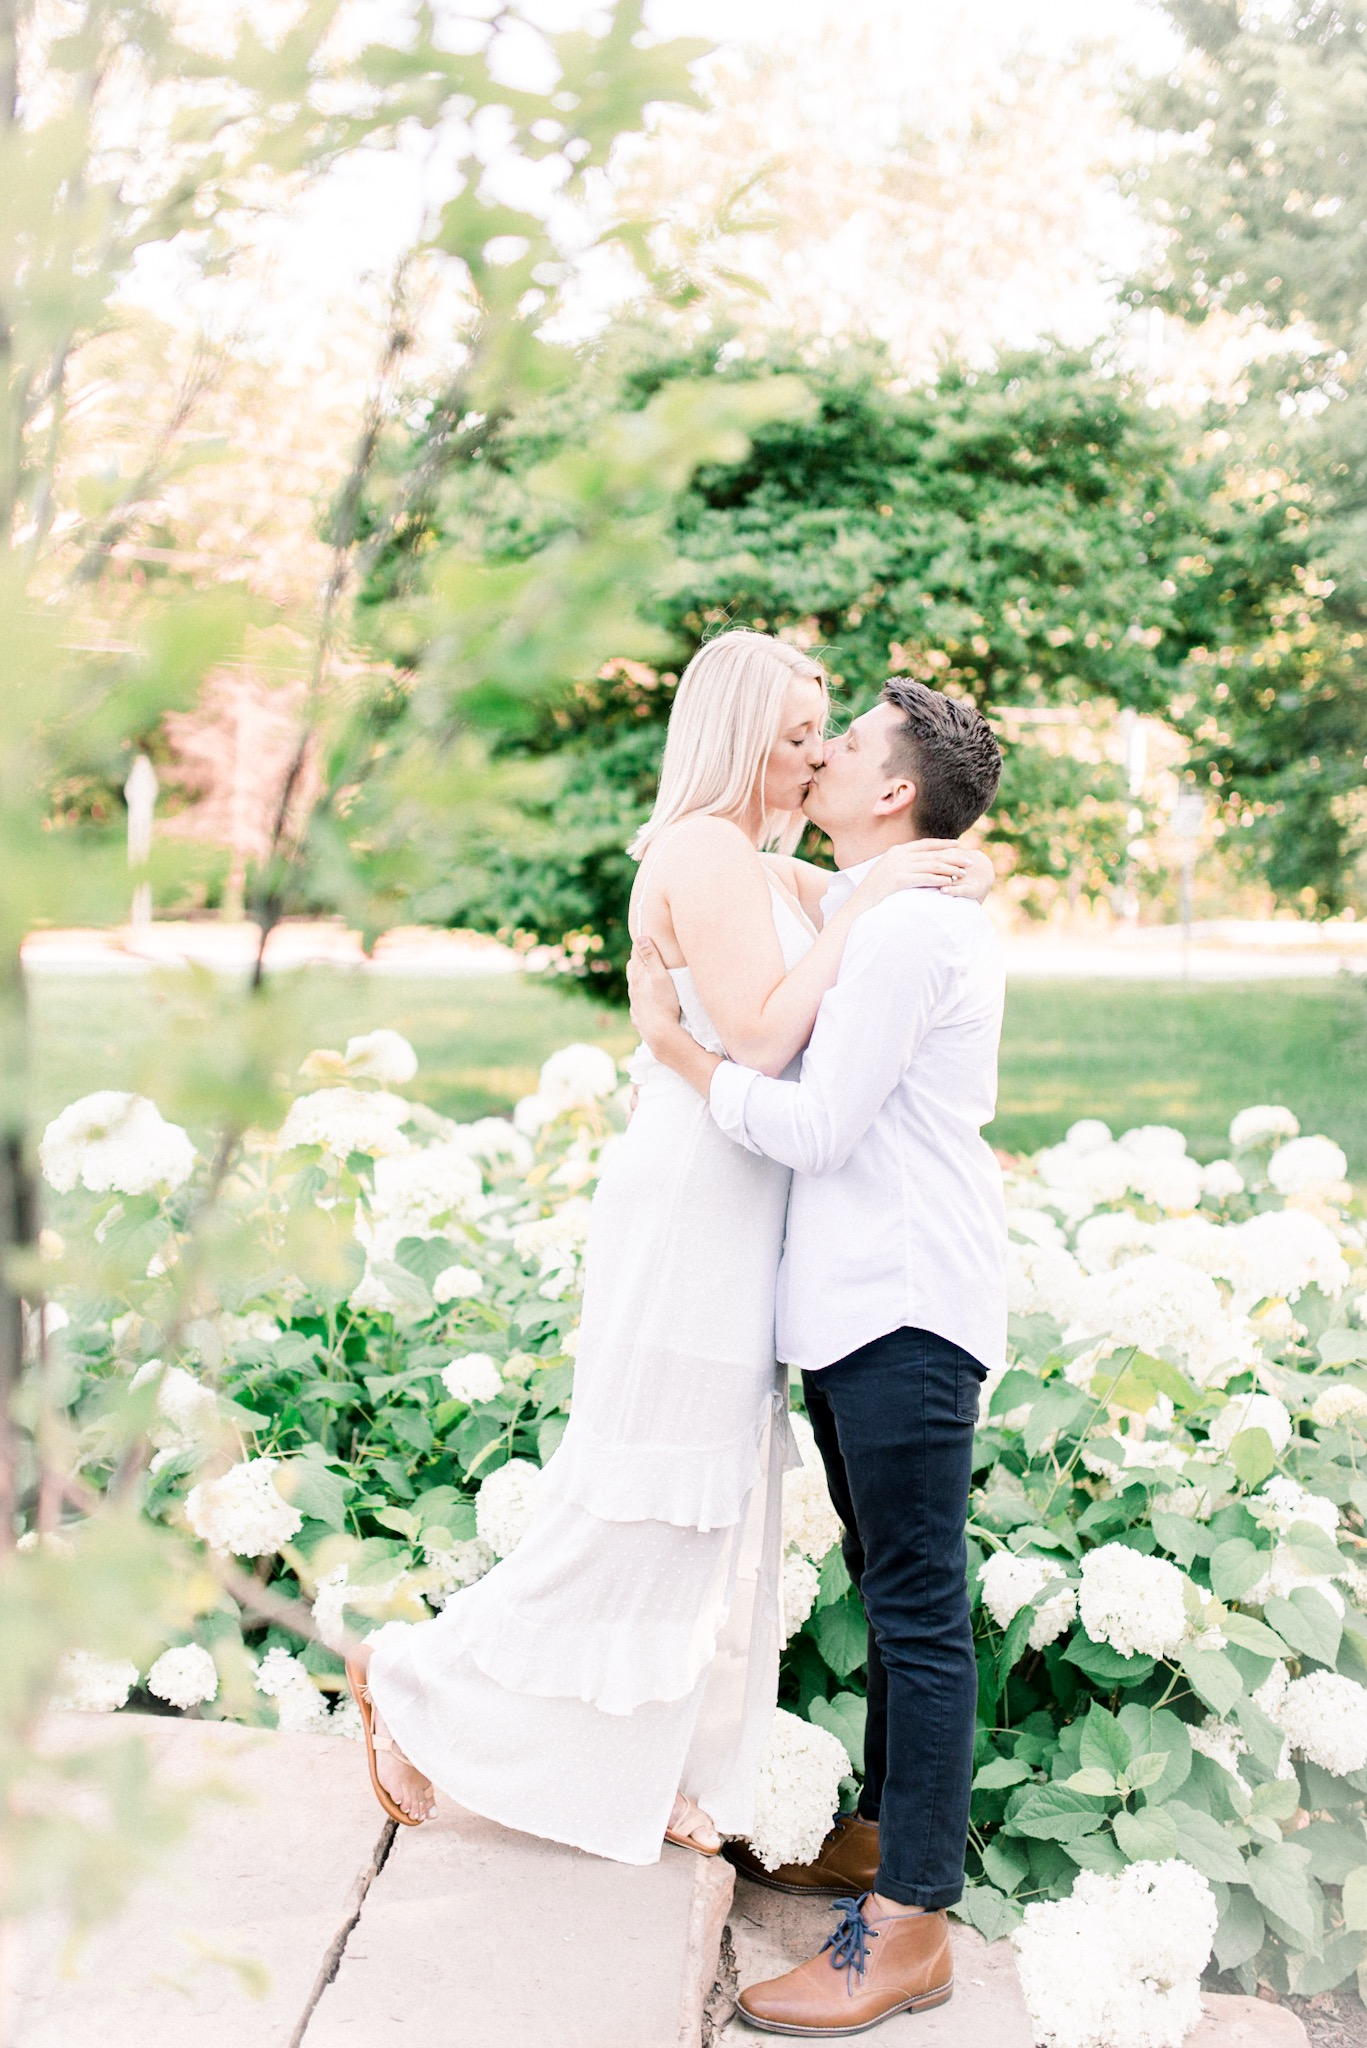 Maria + Josh | Warm and Cozy Summer Engagement in Carmel, IN | Indianapolis Wedding Photographers